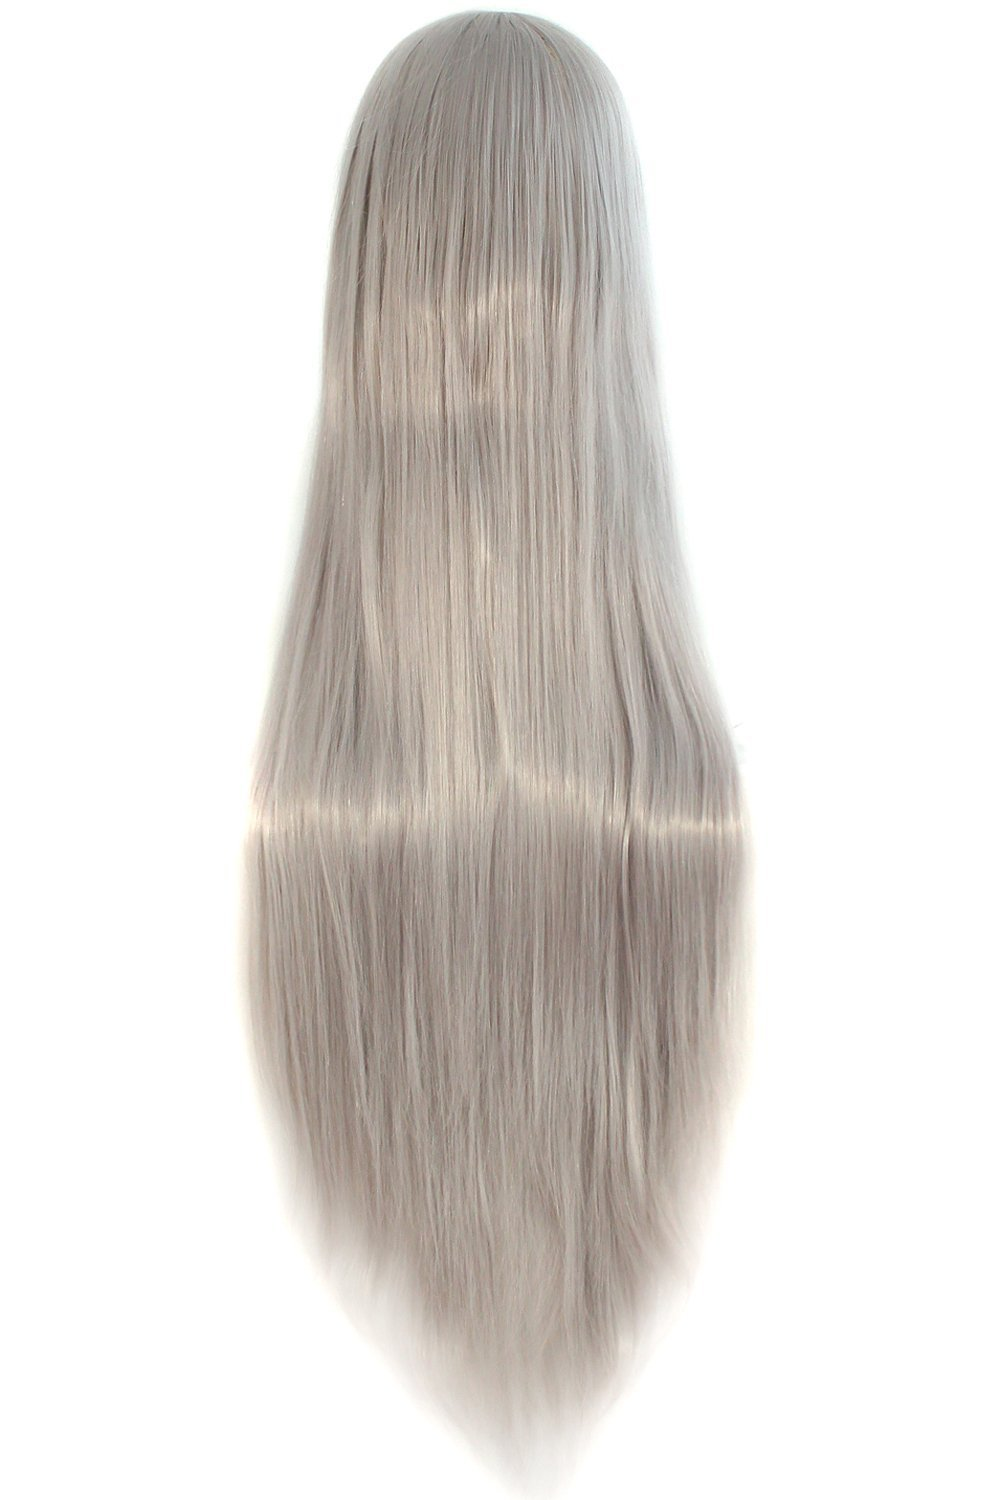 Purple MapofBeauty 32 80cm Long Straight Anime Costume Cosplay Wig Party Wig